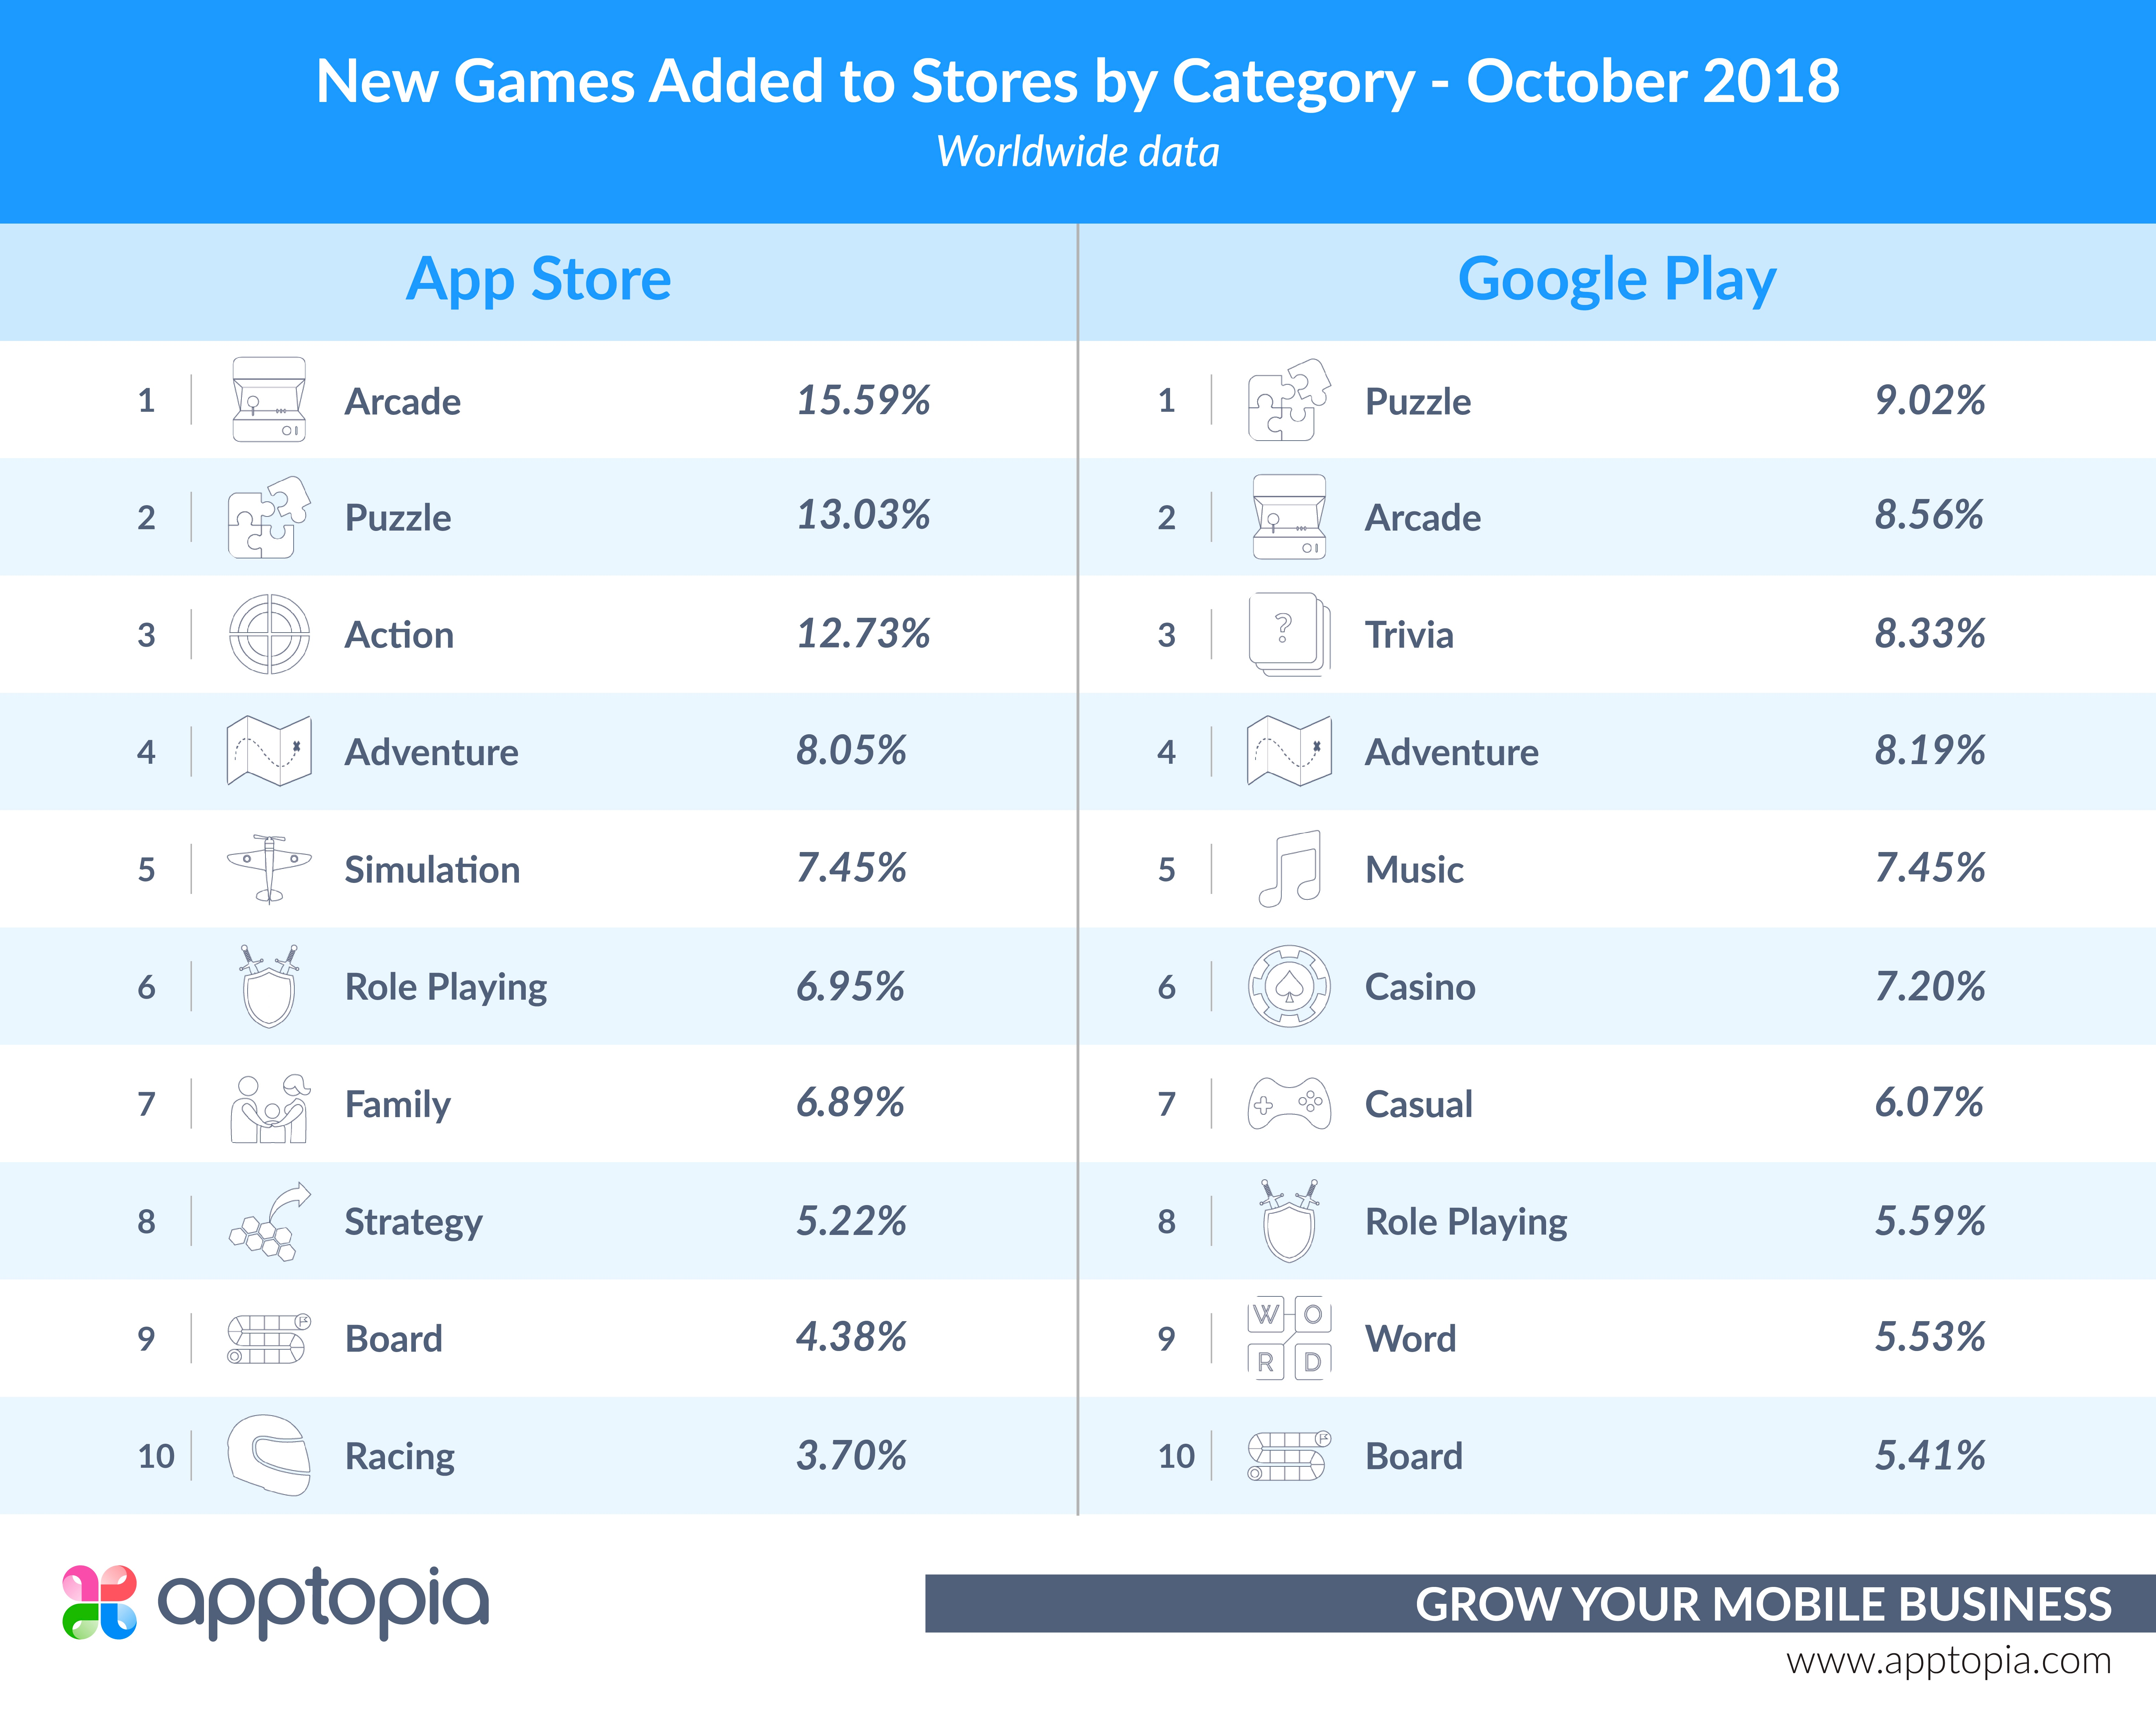 Categories of New Games